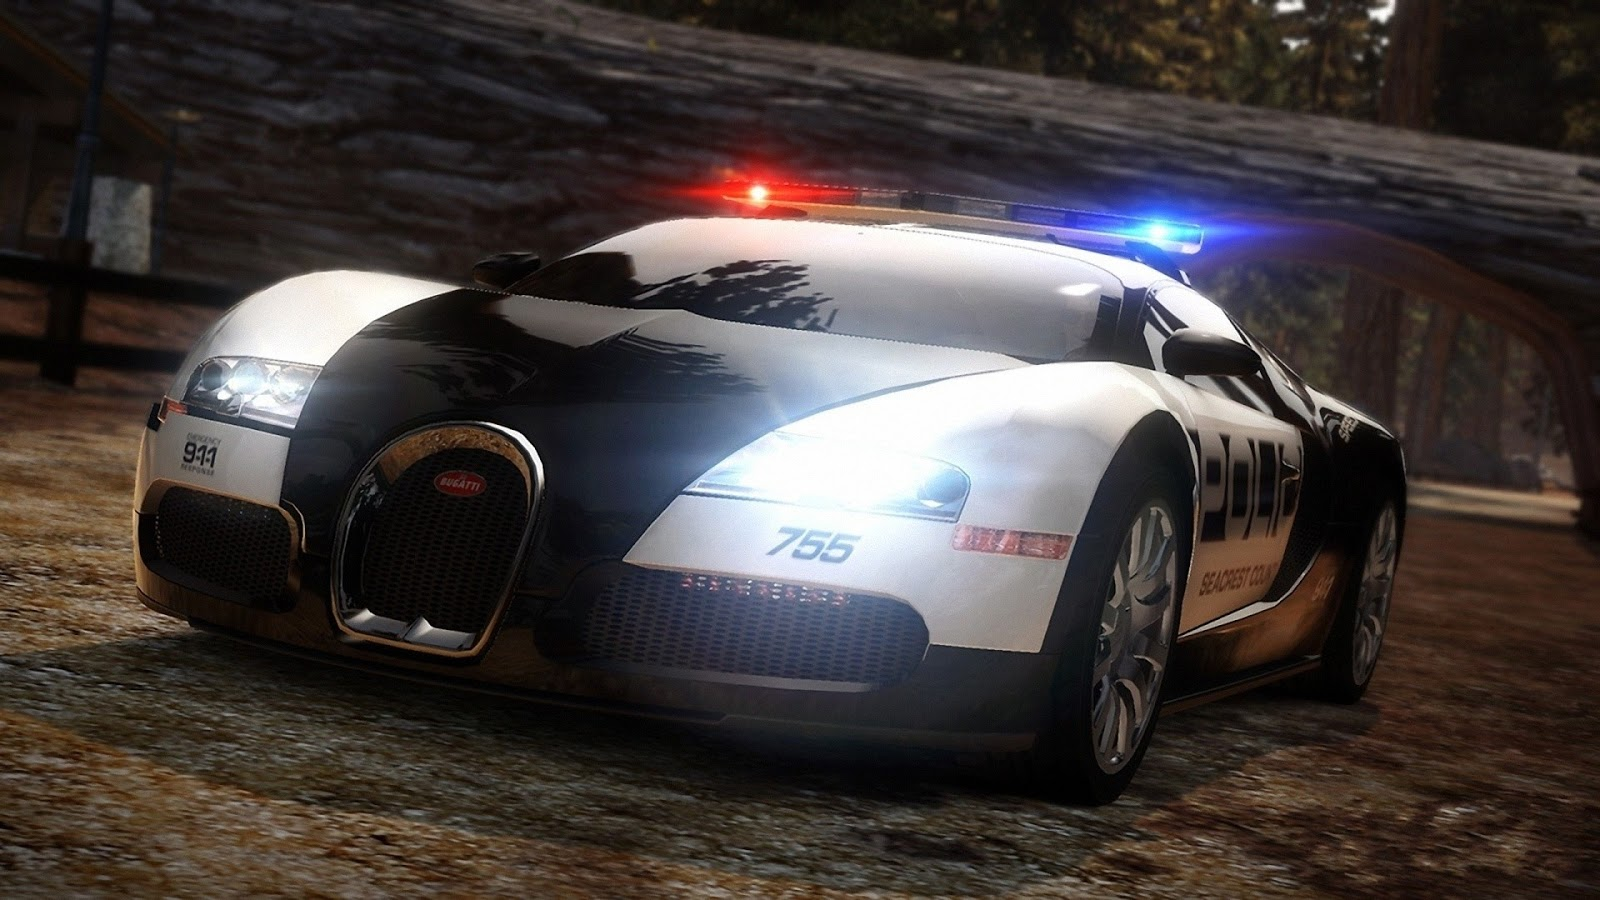 bugatti veyron wallpapers bugatti veyron wallpapers bugatti veyron. Cars Review. Best American Auto & Cars Review